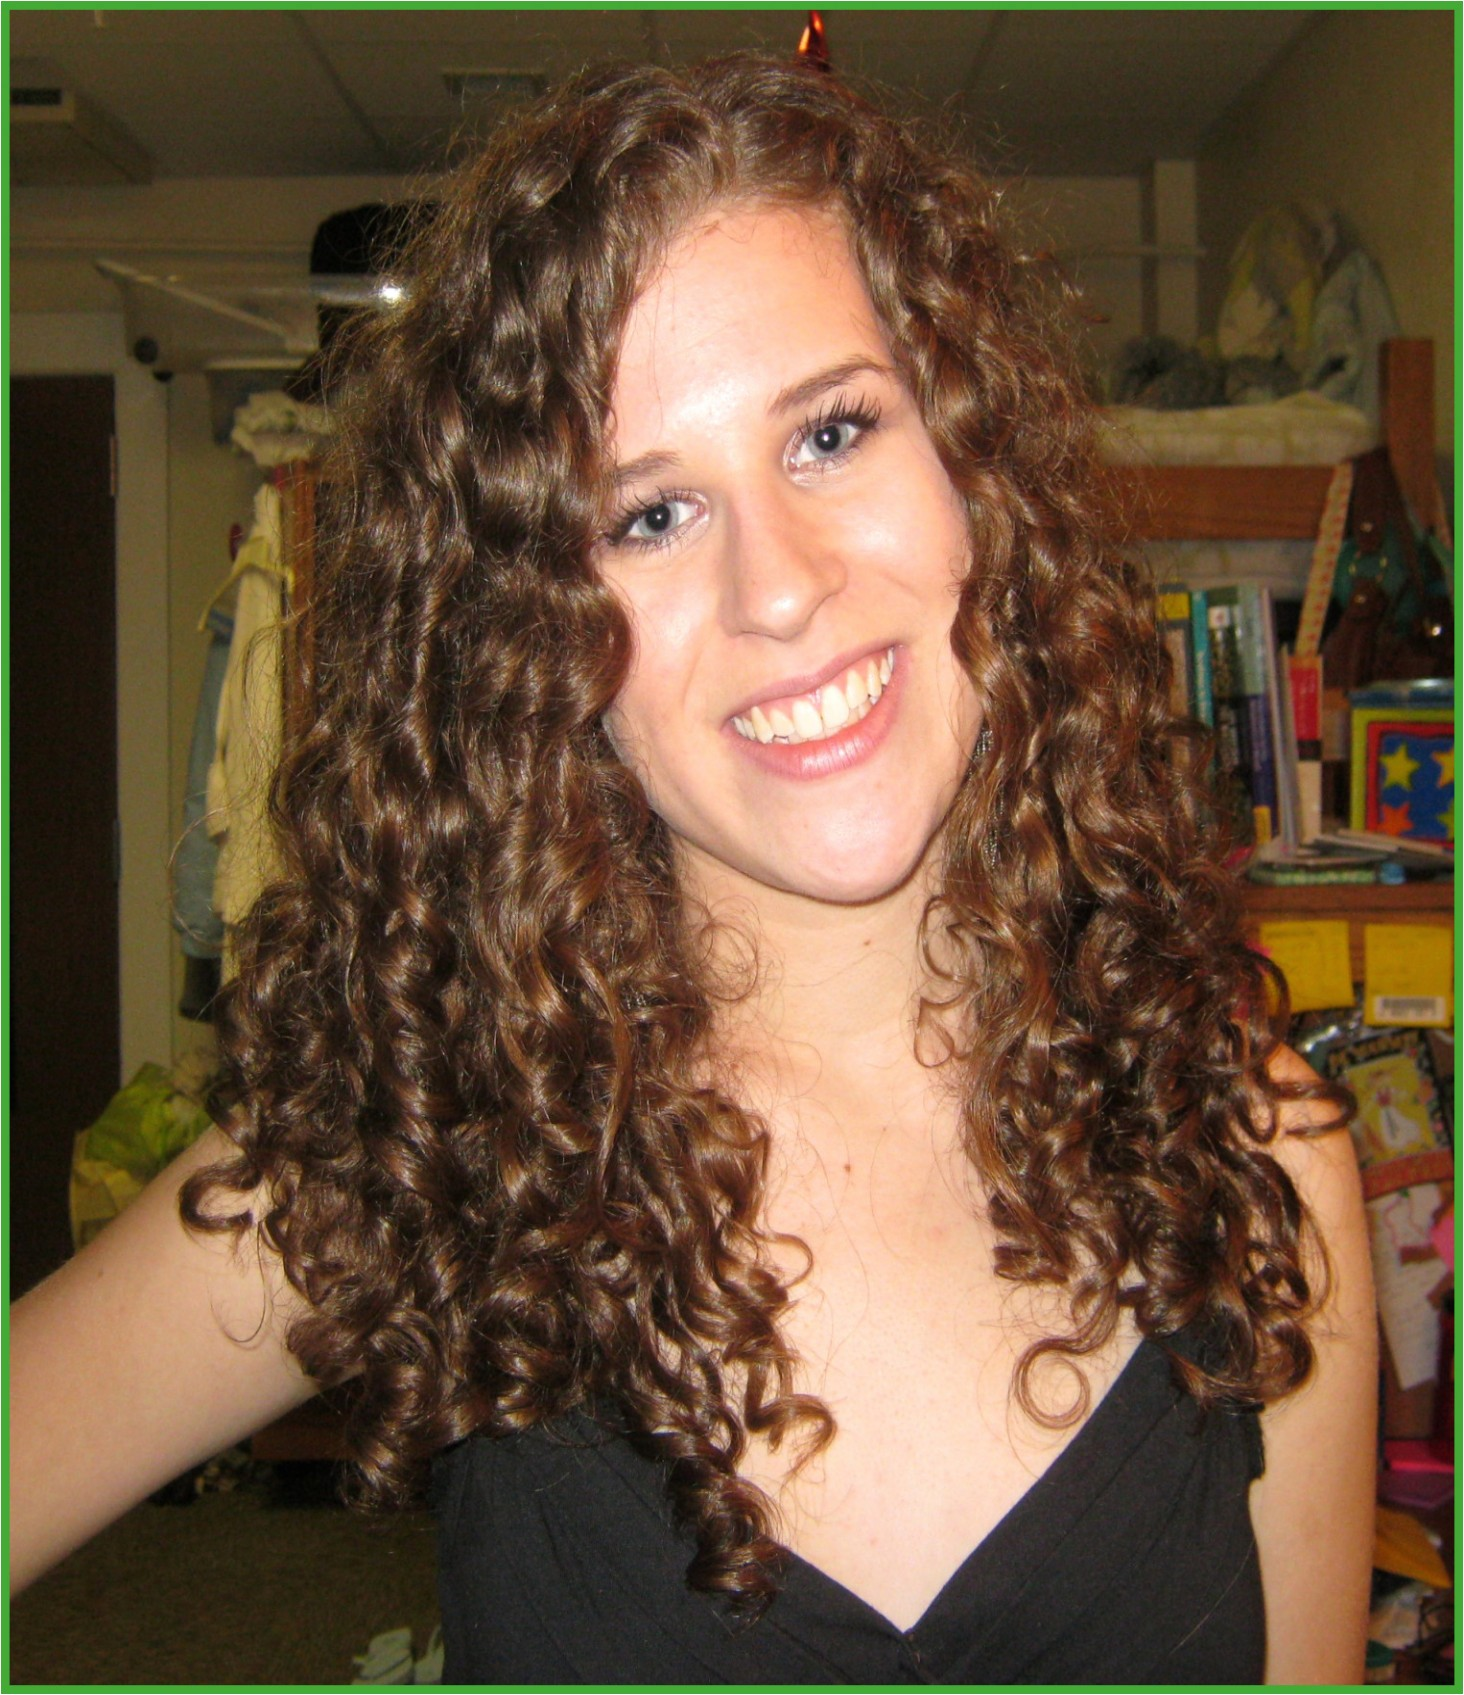 Cute Hairstyles for Girls with Medium Hair Exciting Very Curly Hairstyles Fresh Curly Hair 0d Archives Hair